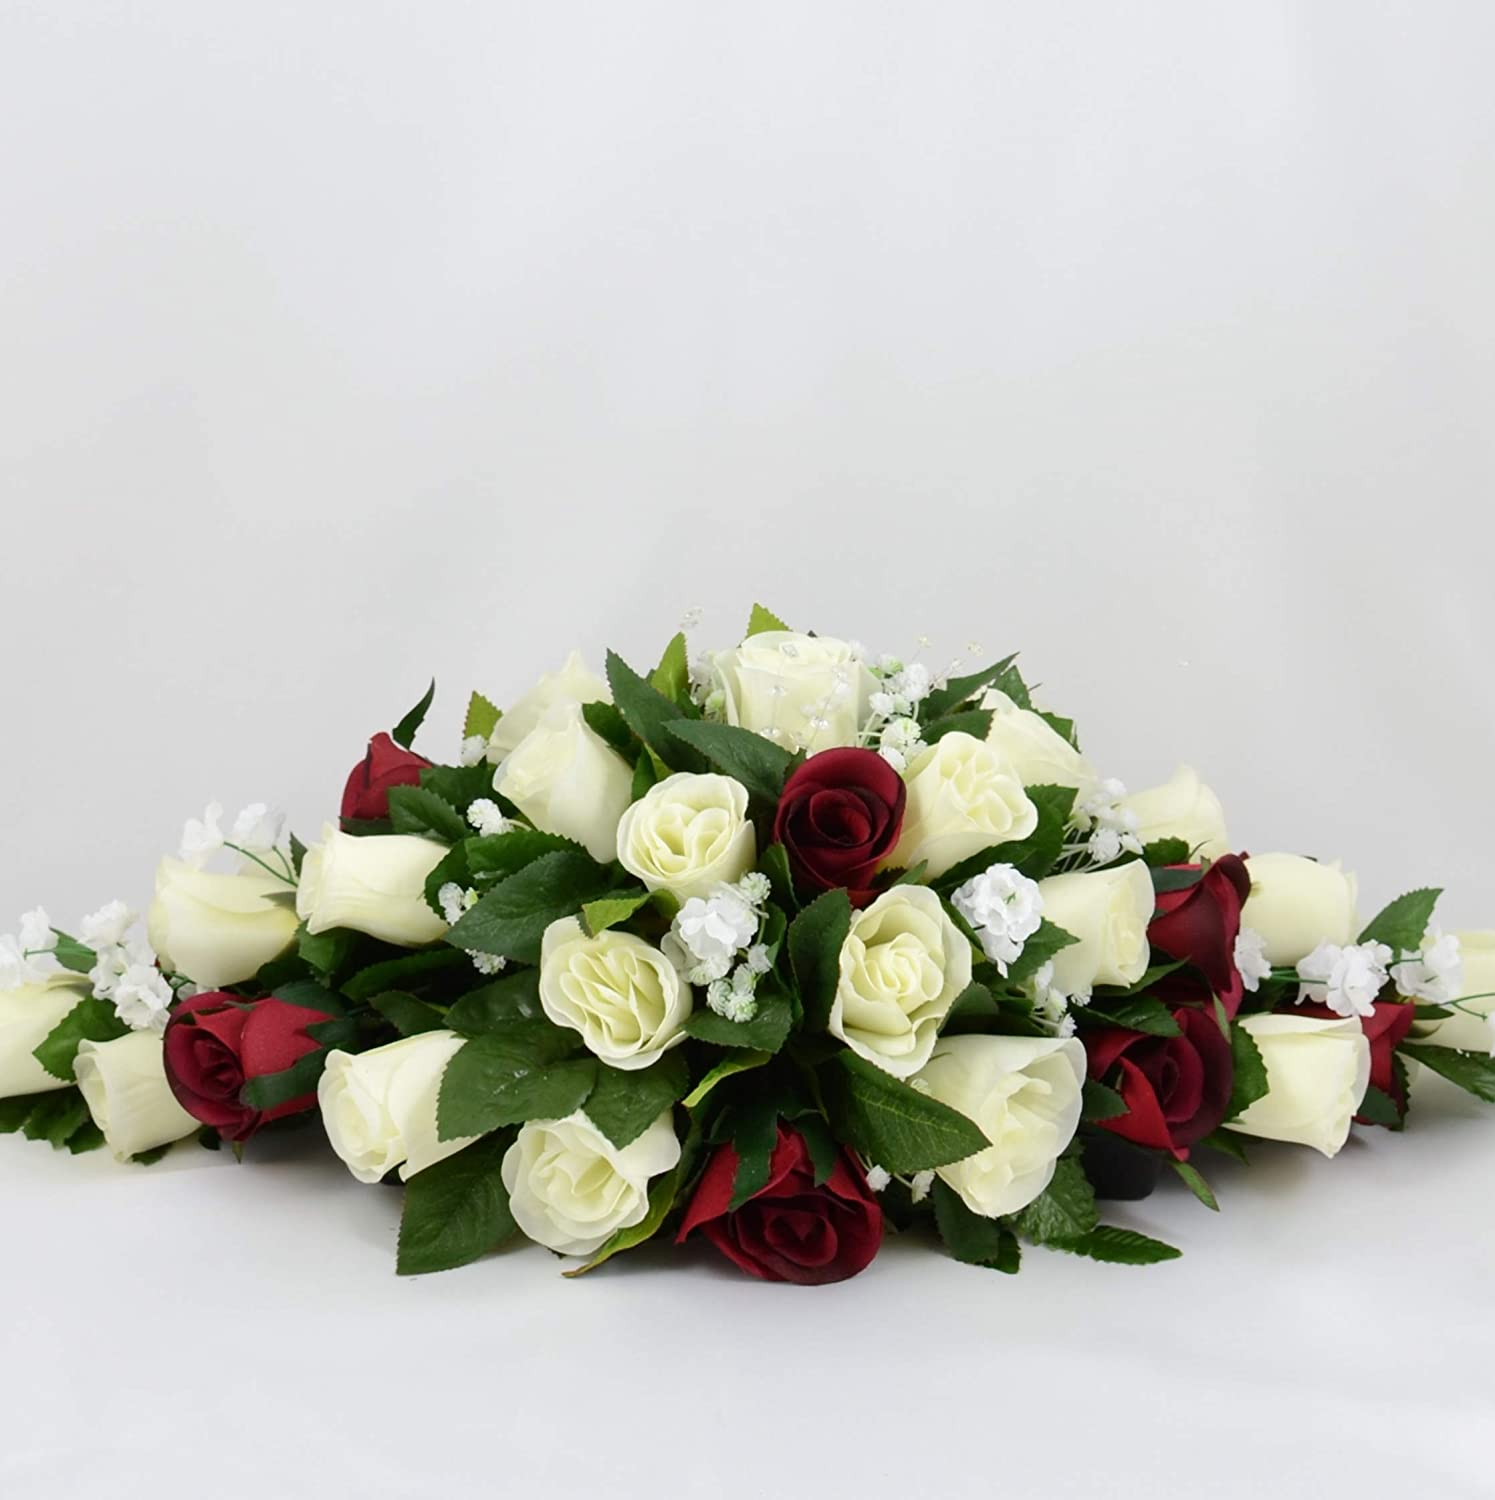 Artificial Wedding Flowers Hand-made by Petals Polly, TOP TABLE ARRANGEMENT, CREAM/IVORY/BURGUNDY PETALS POLLY FLOWERS